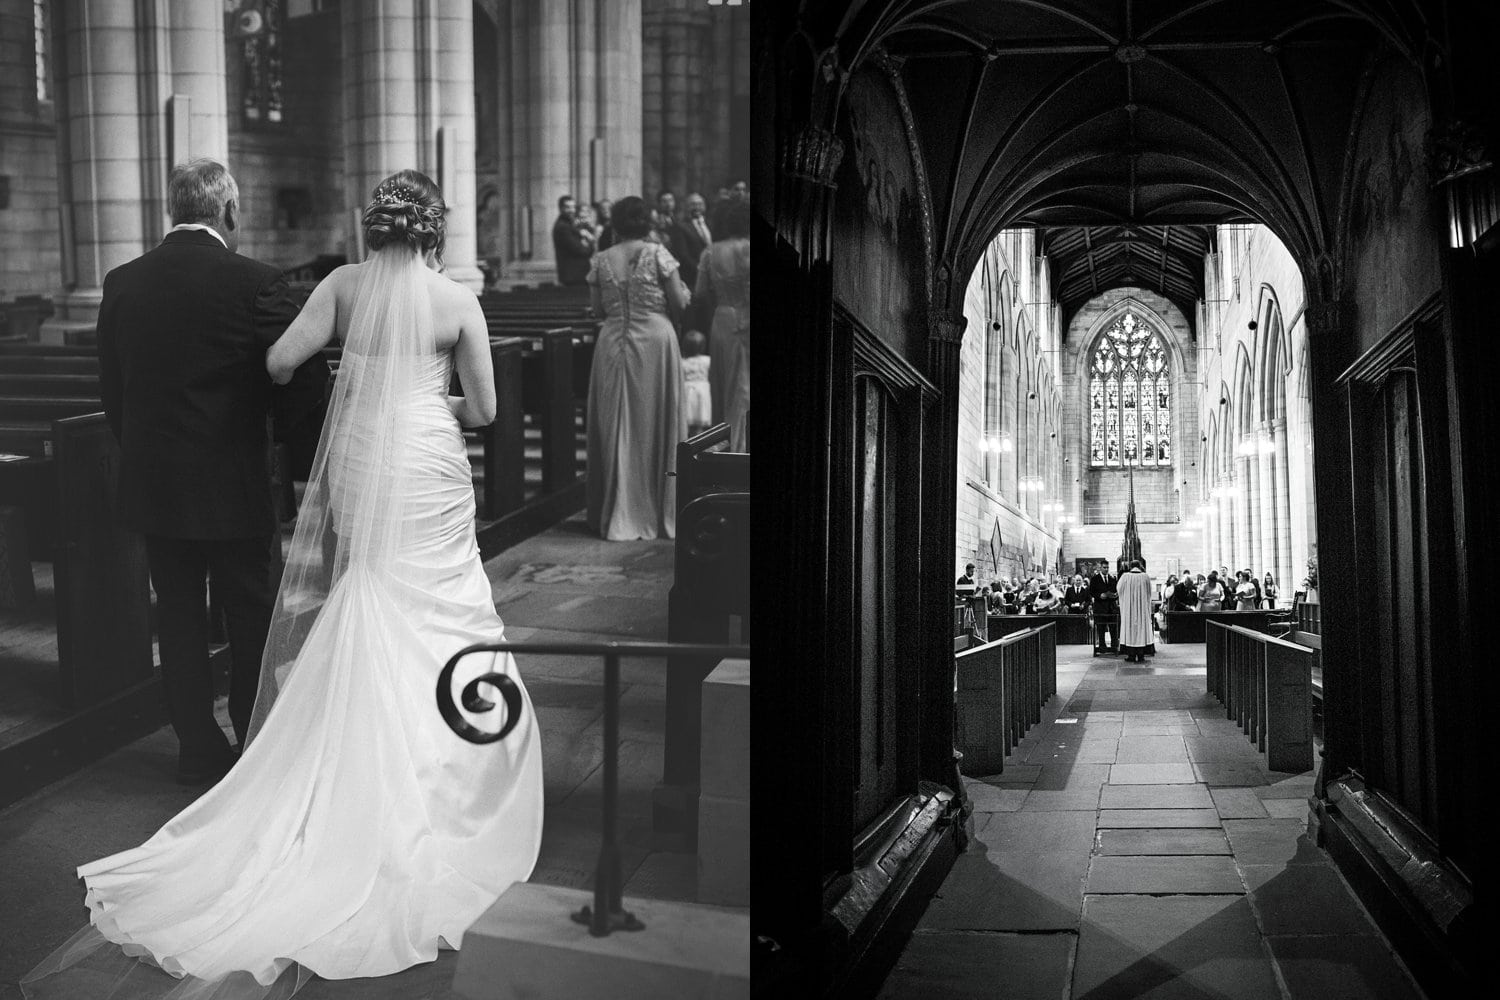 Hexham Abbey Wedding, coming down the aisle